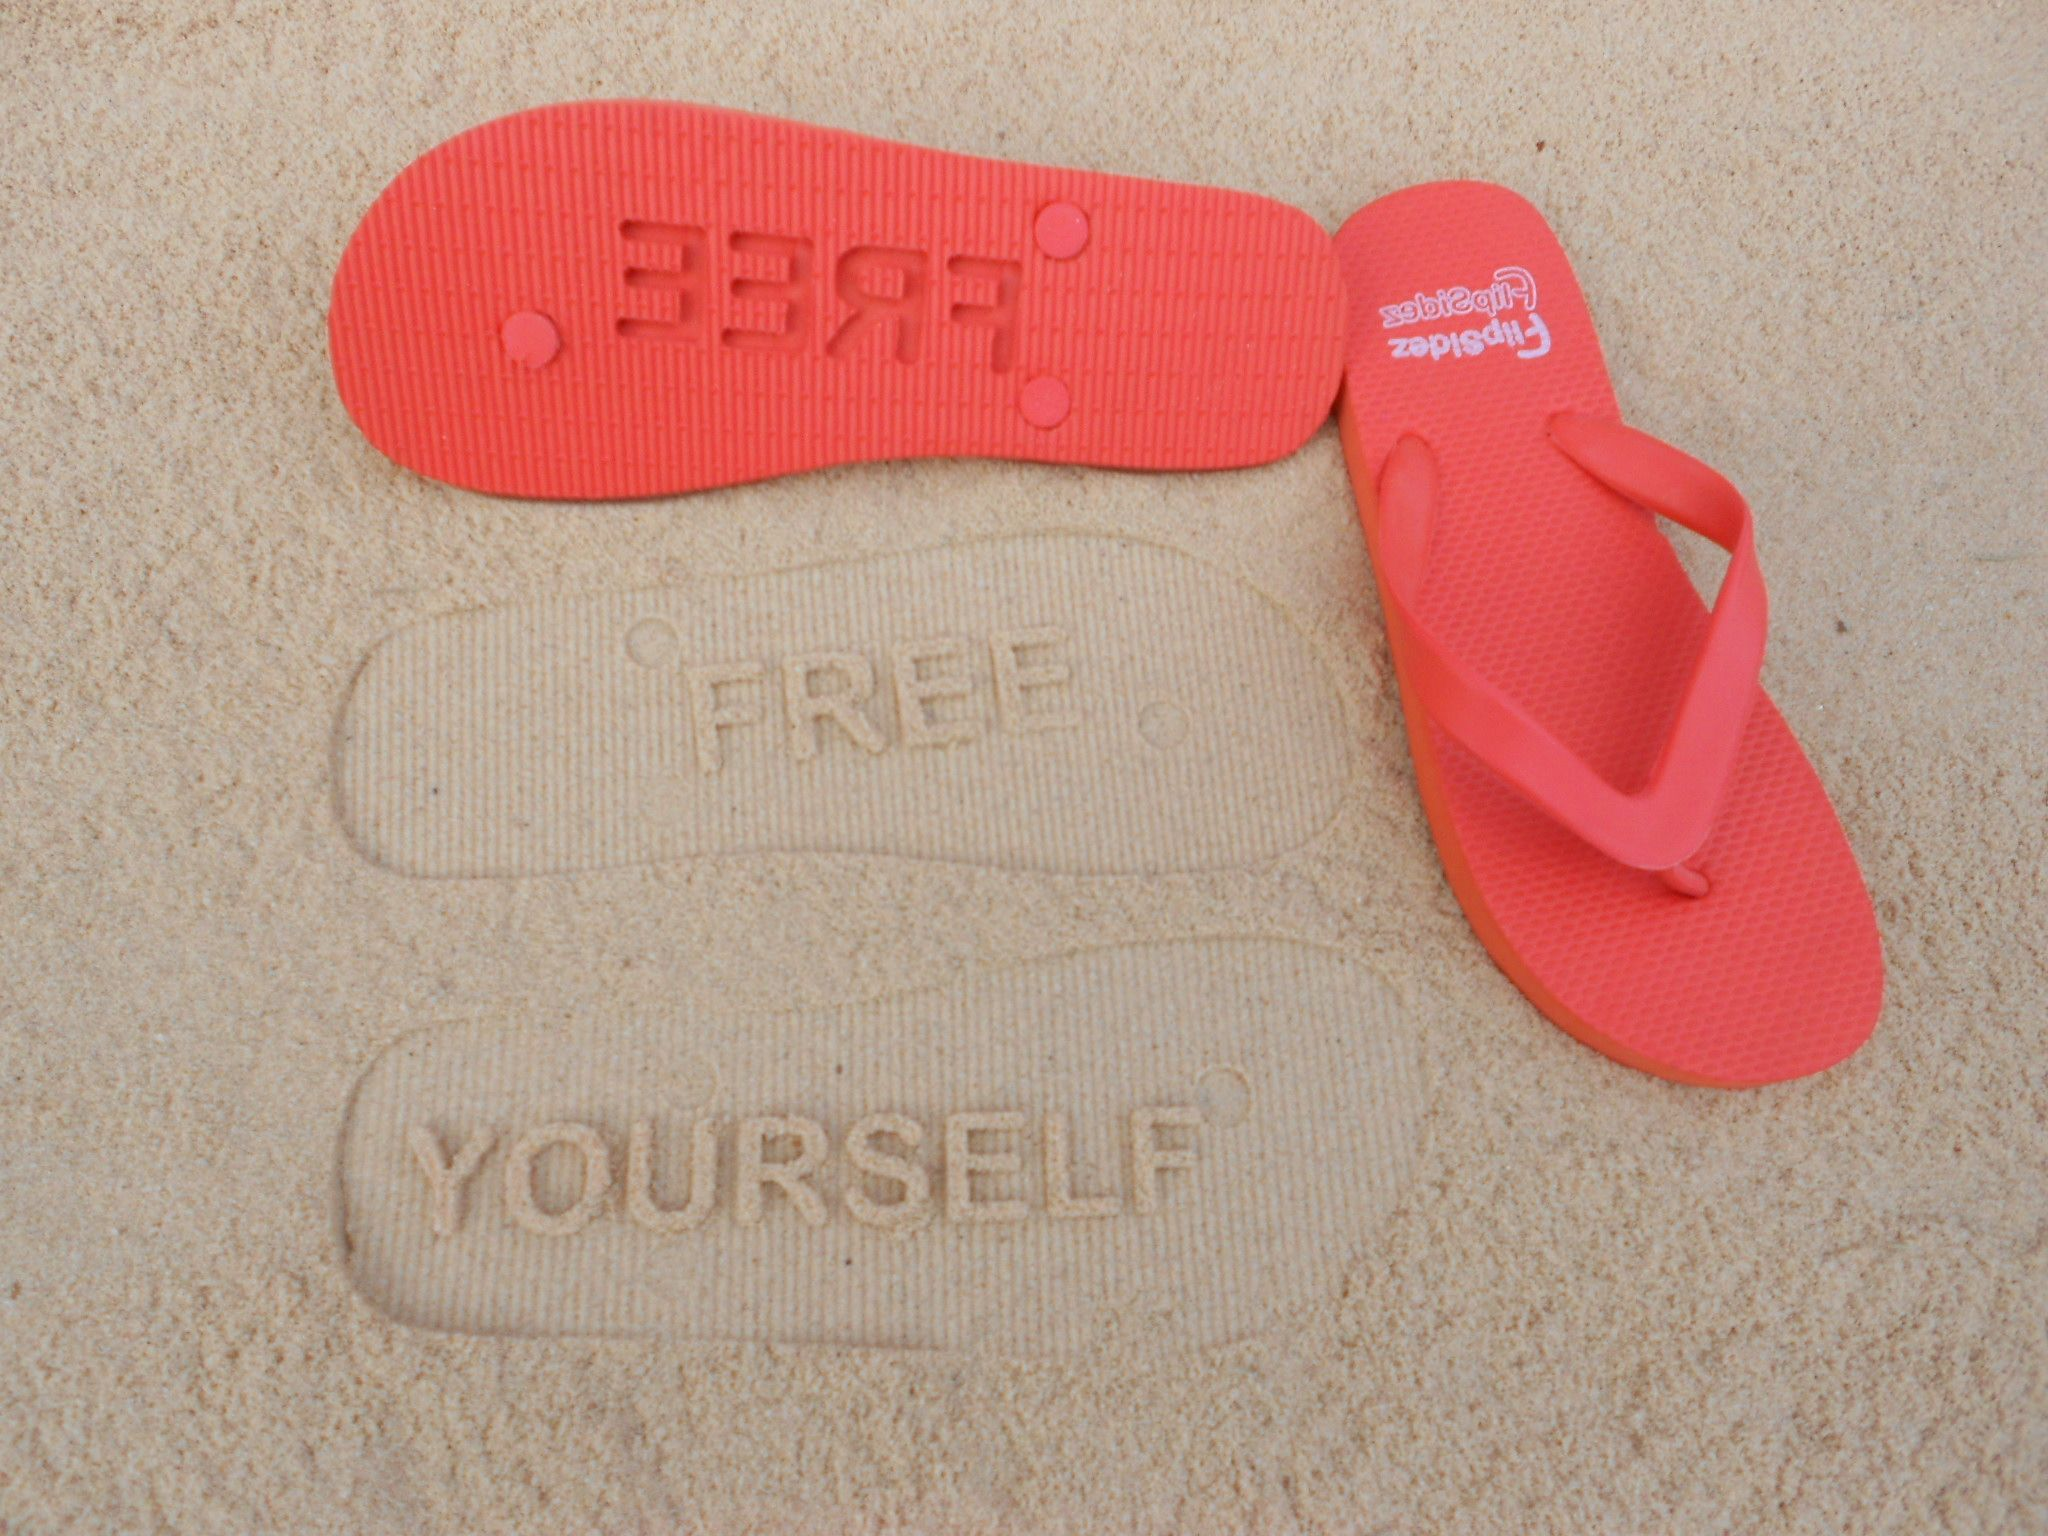 ba2114d04b85 We think this  free  yourself design is awesome! Be who you are (or want to  be!) not what other people tell you to be.  FlipSidez  beach  fun  sun   sand   ...